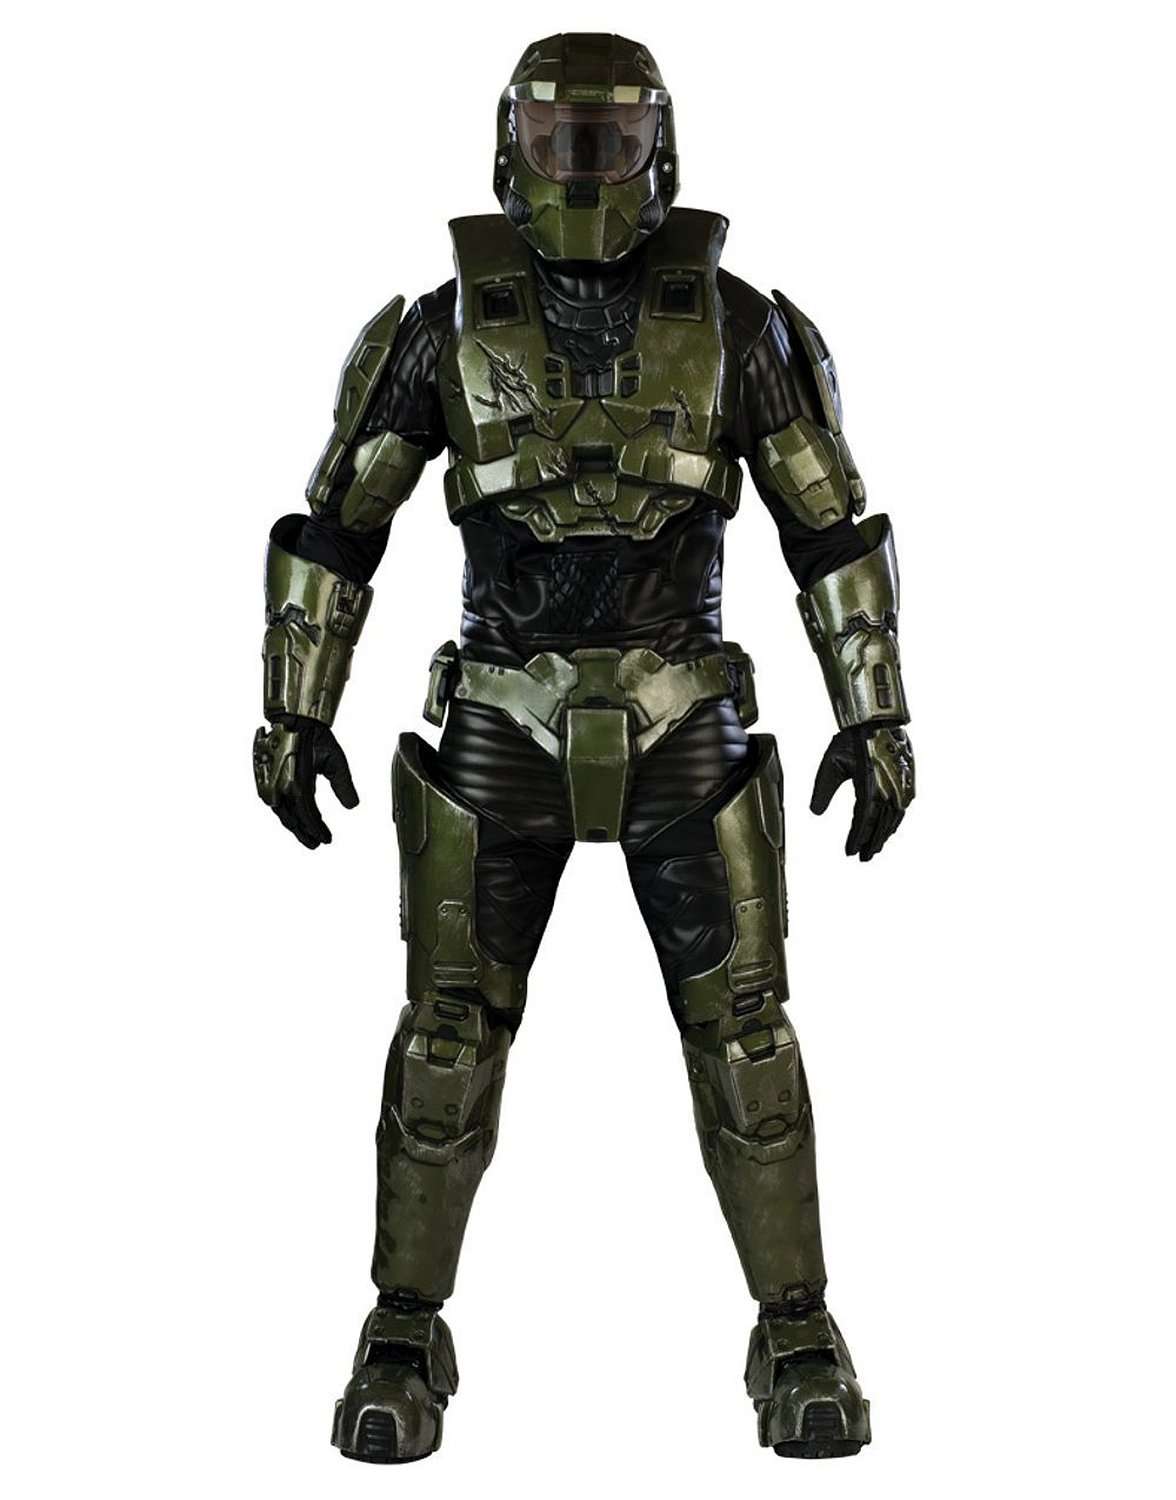 halo 3 master chief supreme collectors edition costume with full